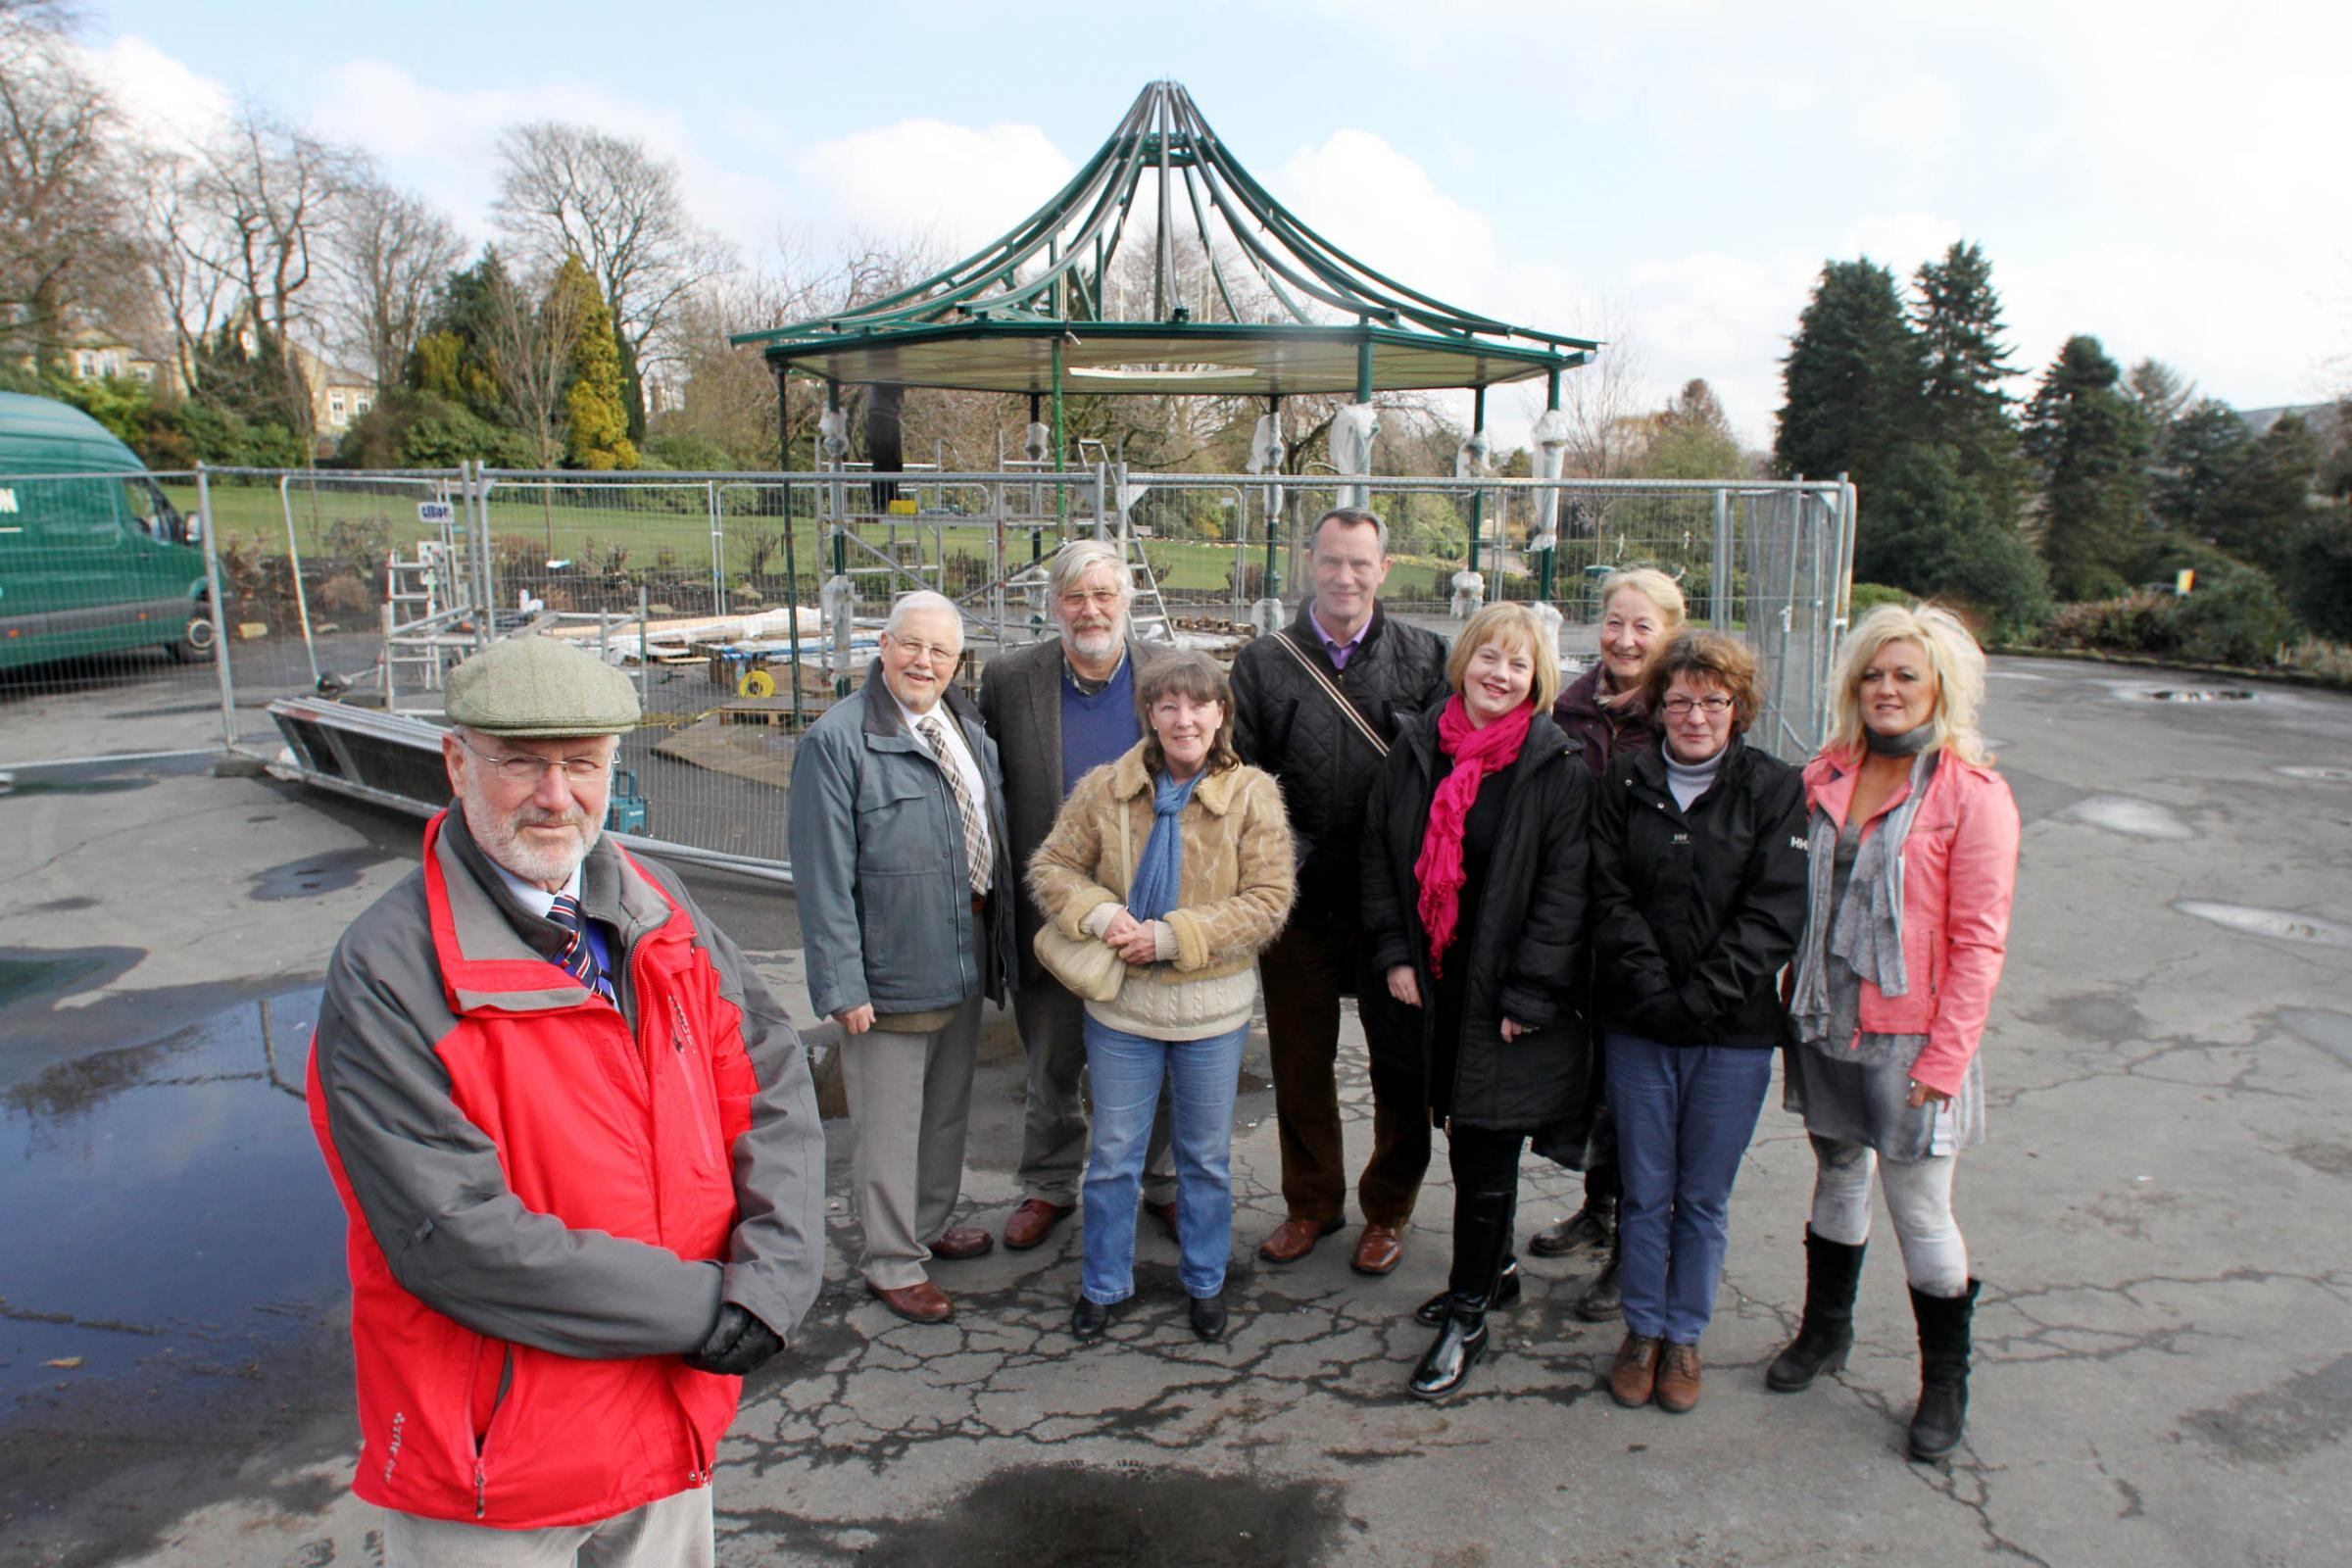 Haworth Parish Council chairman, Councillor John Huxley, left, is joined by fellow members and Friends officials as work begins on the Central Park bandstand in the village